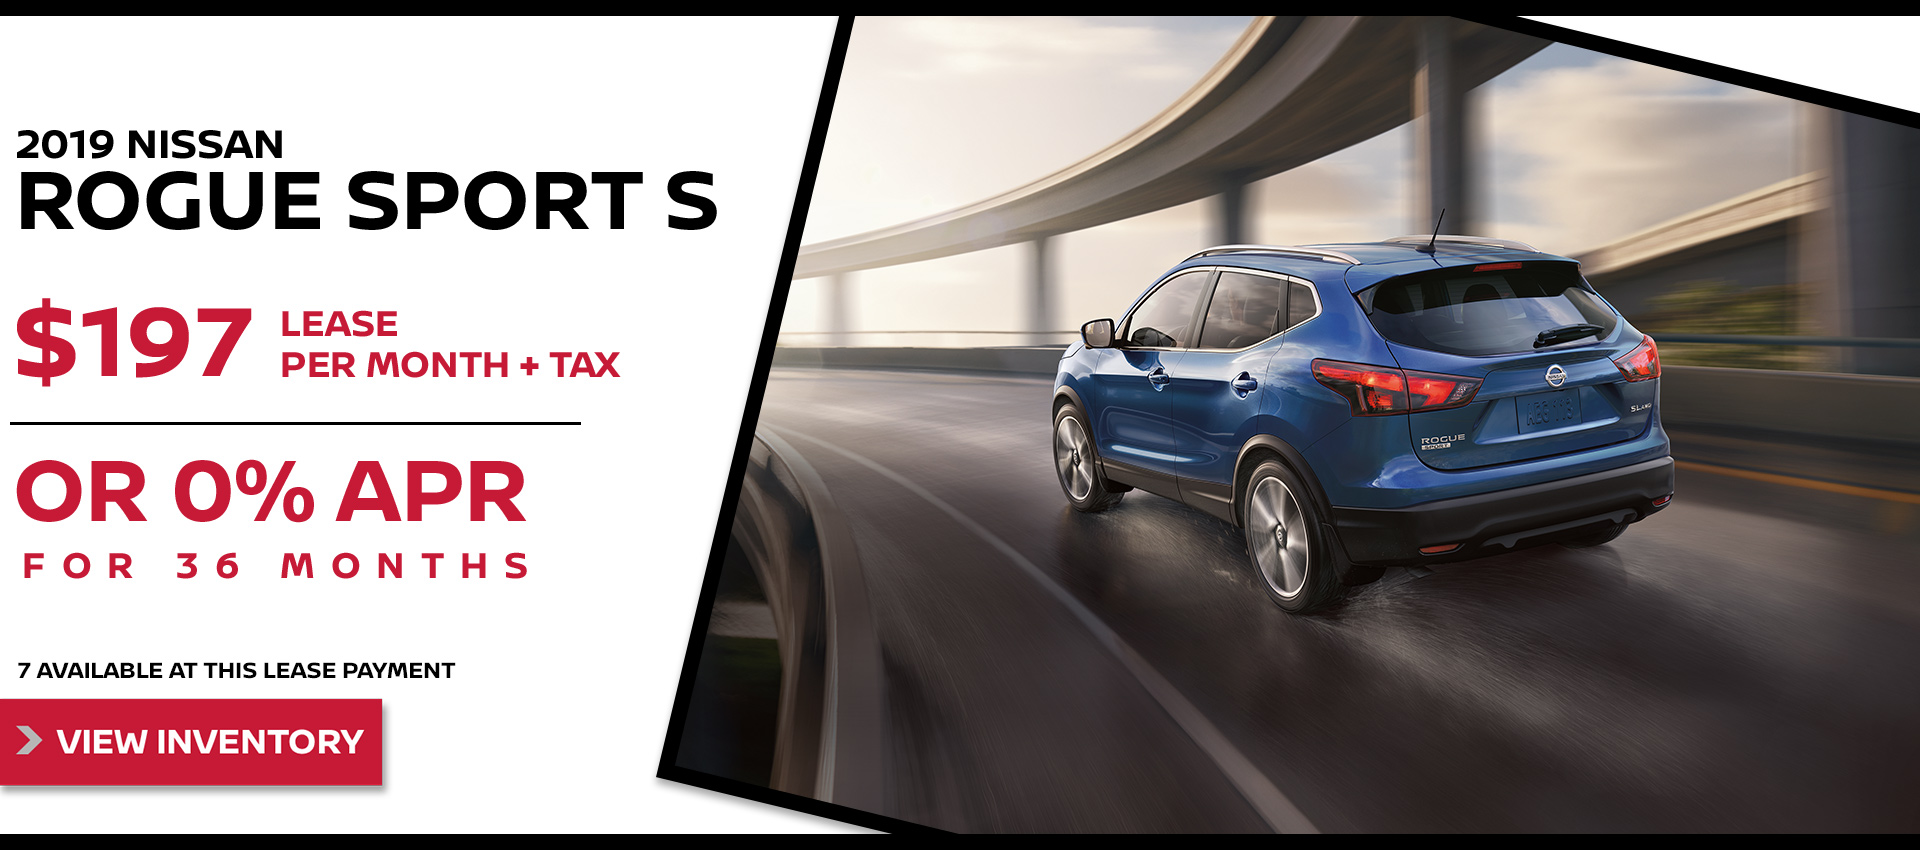 Mossy Nissan - Rogue Sport $197 Lease HP